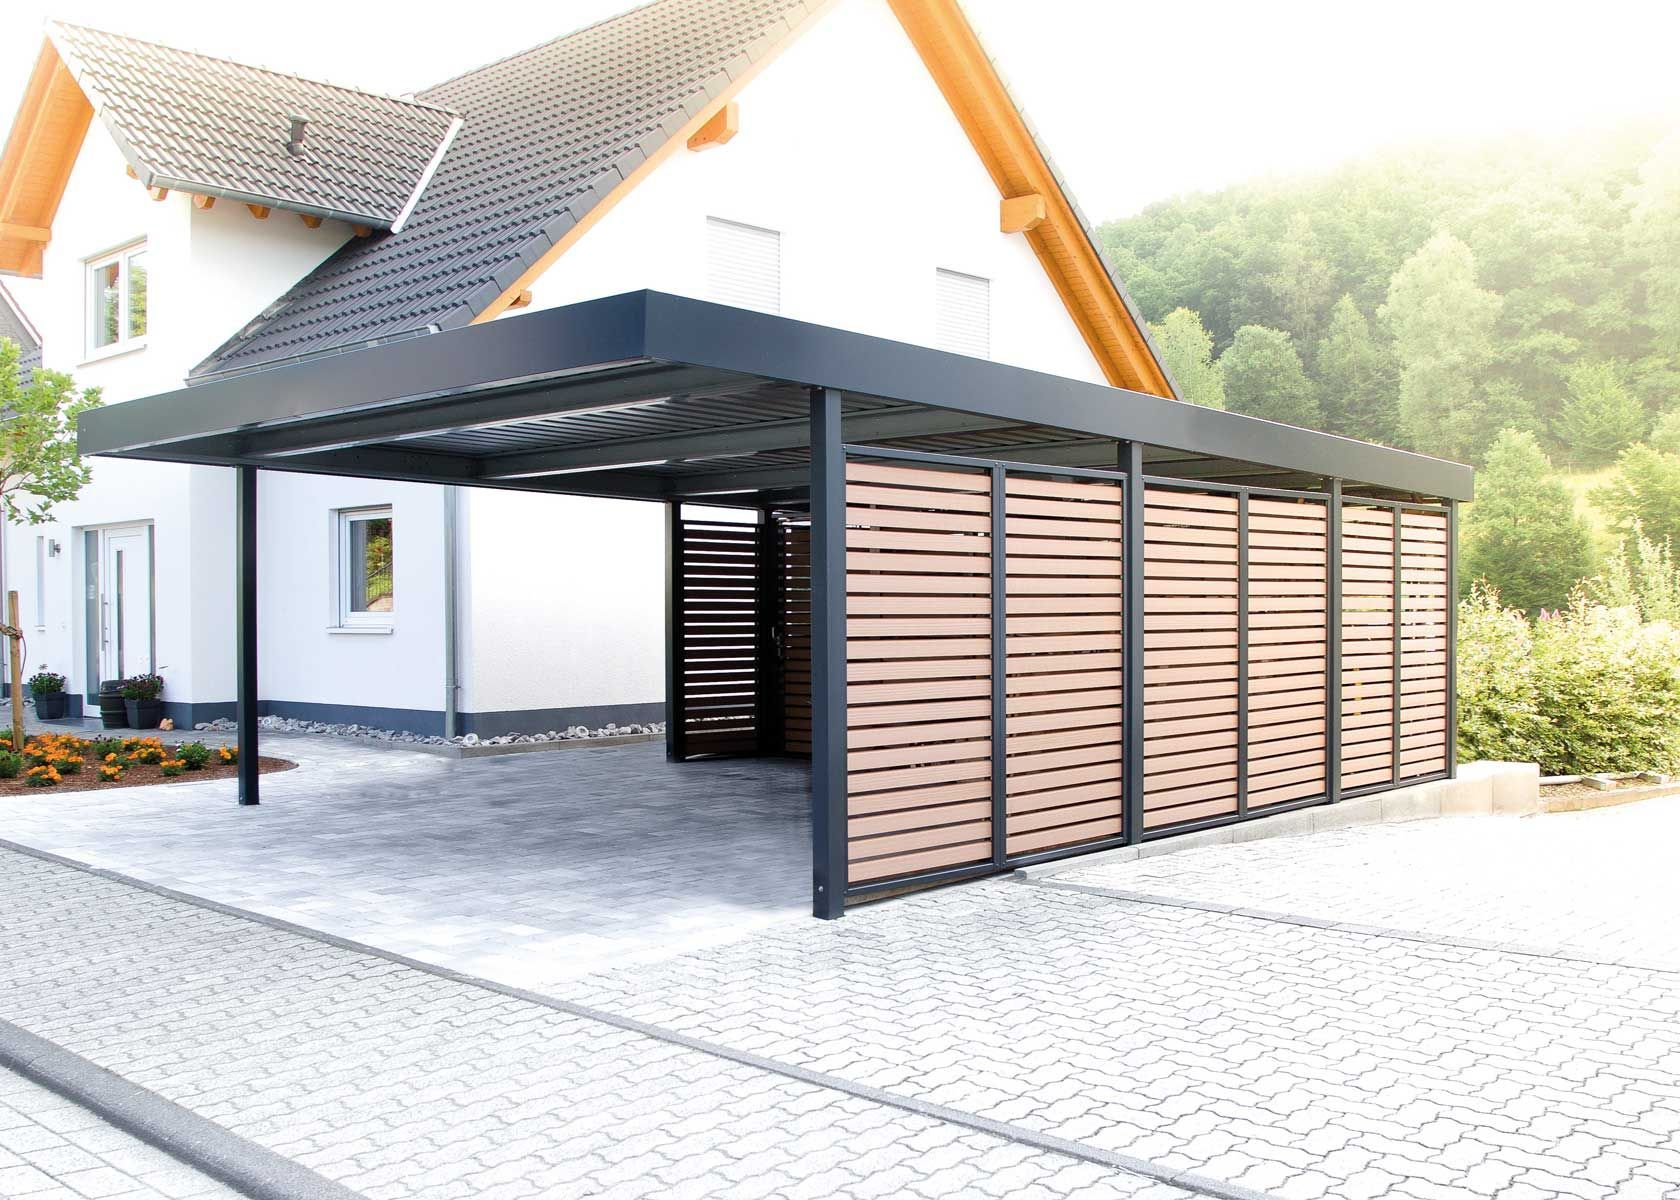 Carport Mit Wandfelder Als Sichtschutz Als Carport Mit Pergola Pergola Modern Pergola Screen Per In 2020 Carport Makeover Carport Designs Barn Homes Floor Plans